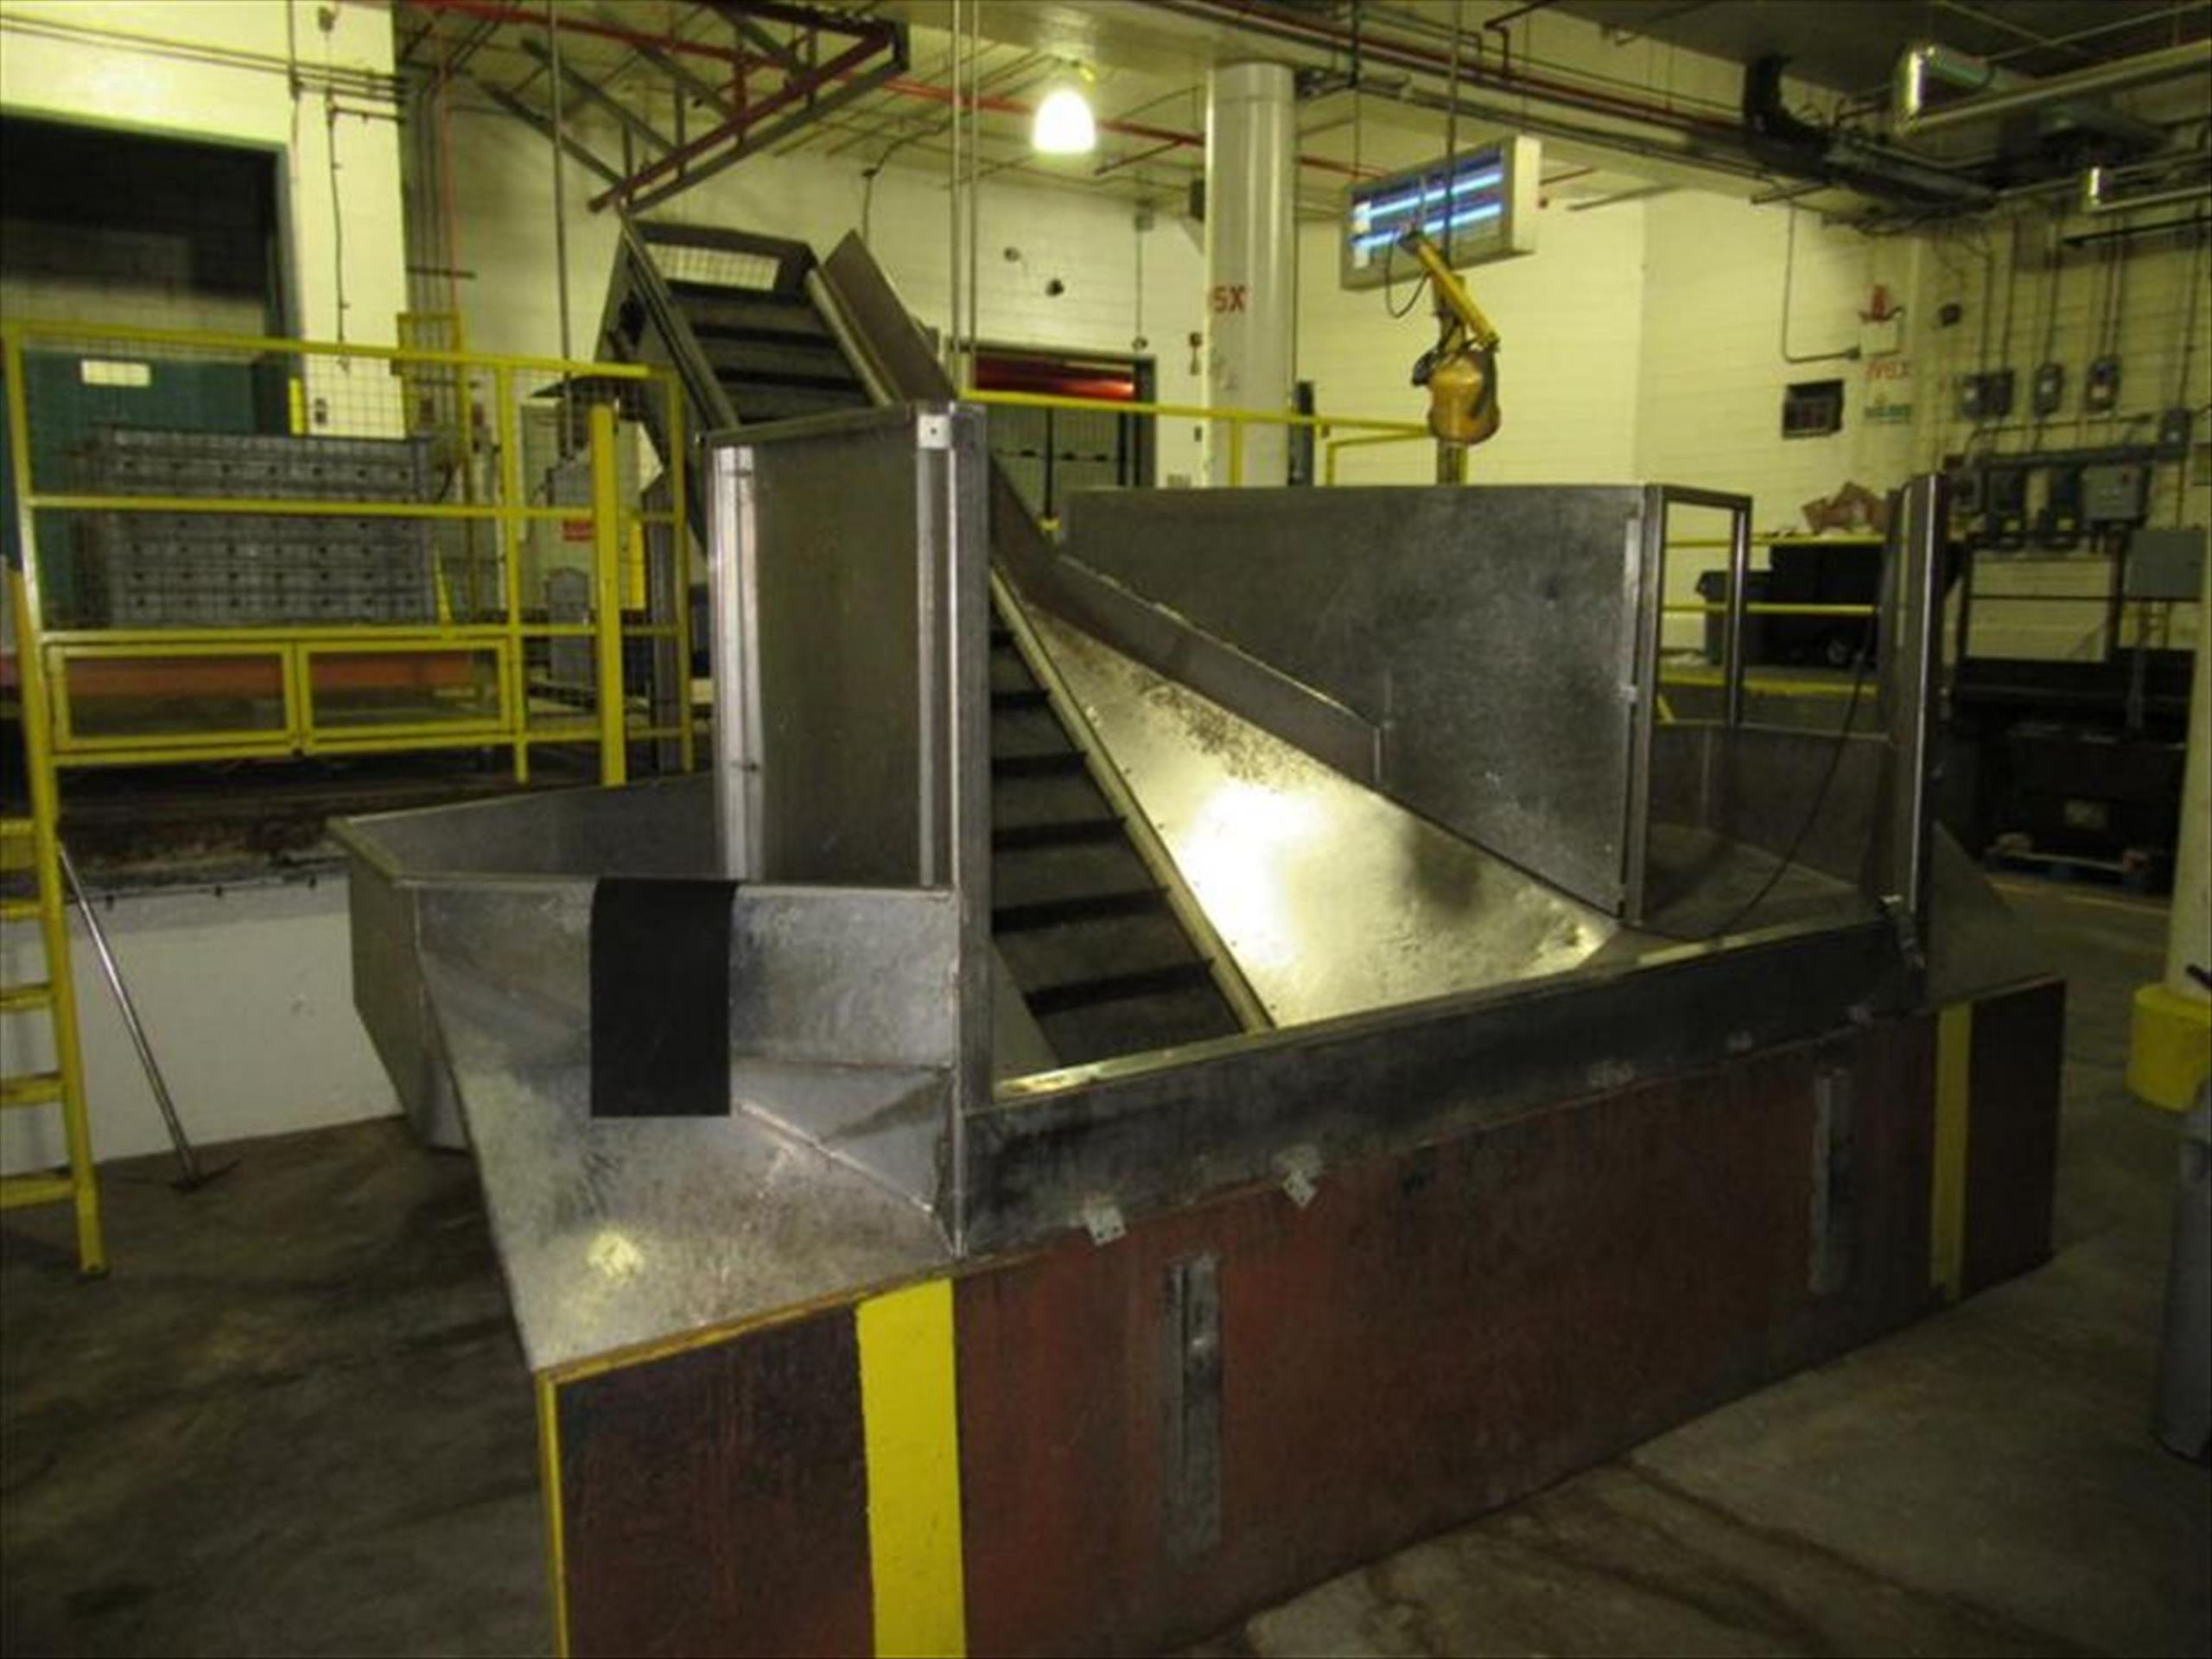 Vegetable stainless receiving hopper conveyor bunker type, approx 10 ft w x 24 in h x 4 ft deep - Image 2 of 3